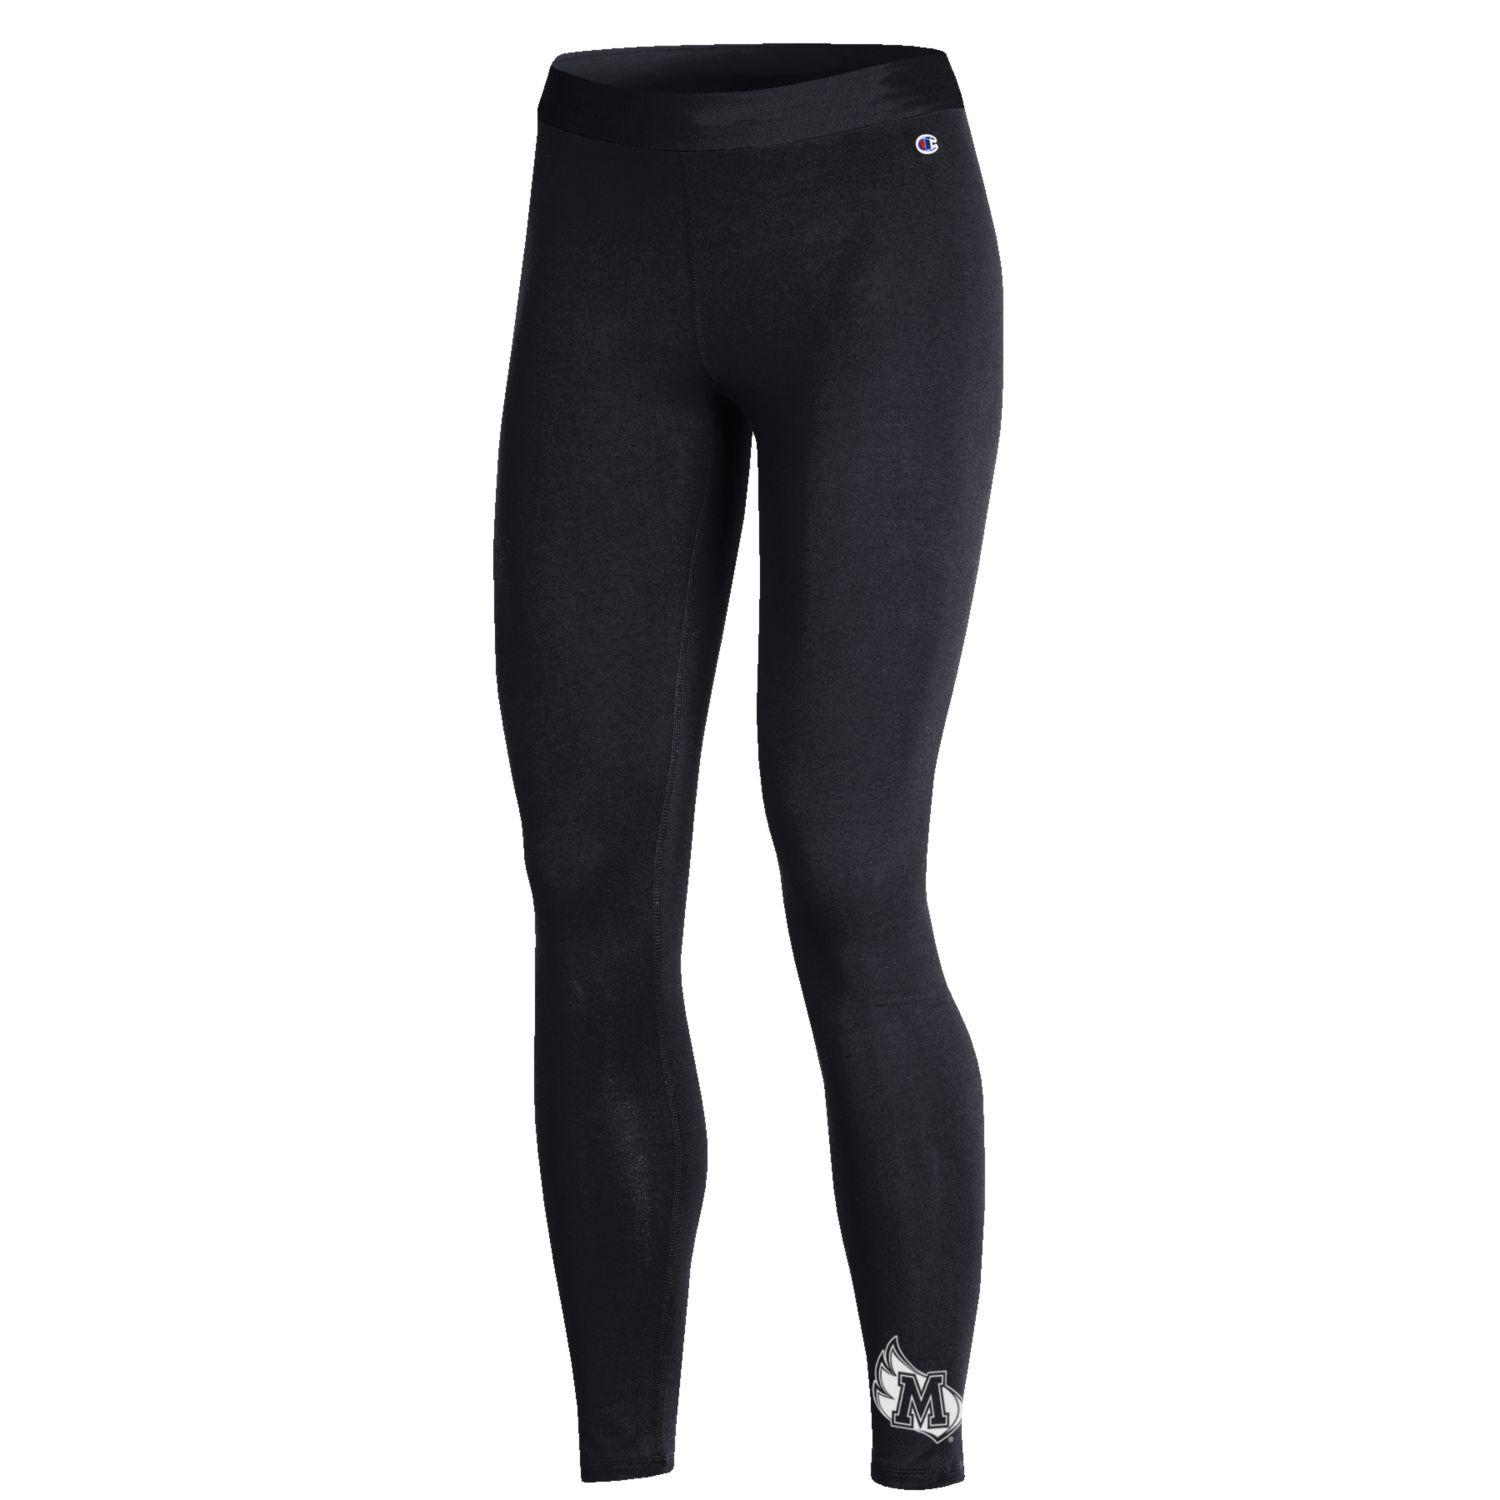 Image for the Cotton Stretch Leggings, M-Wing product